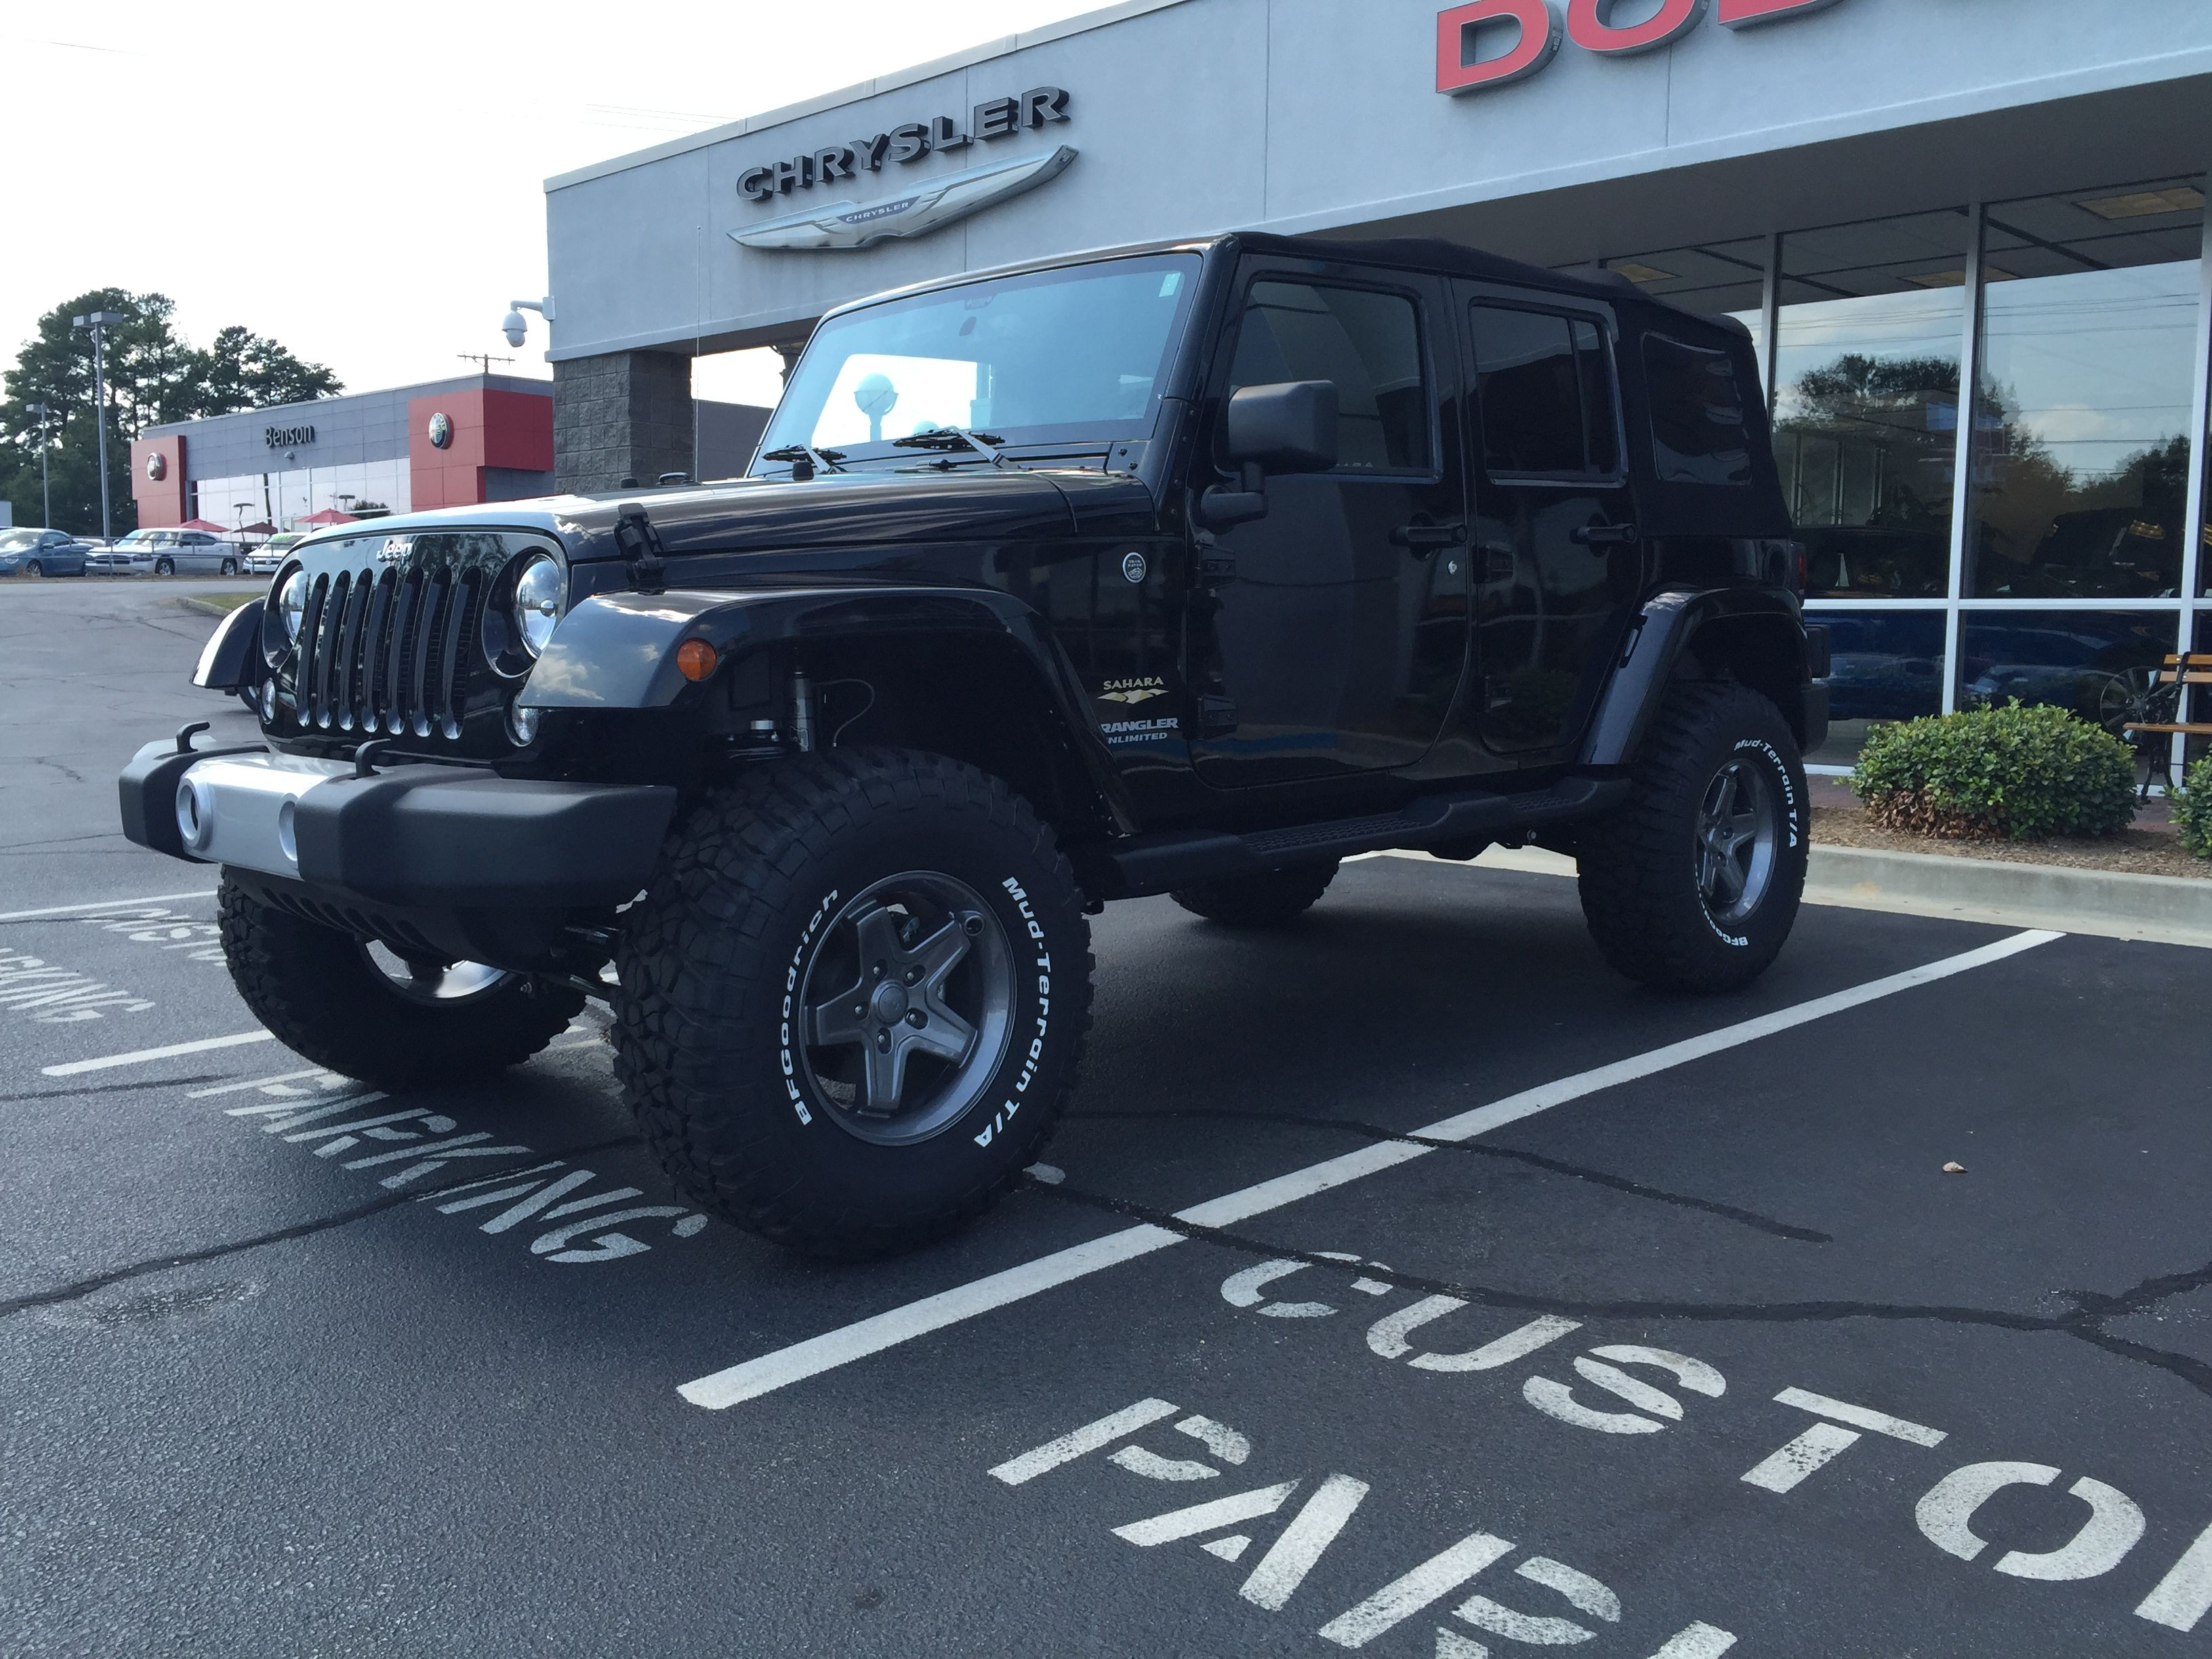 2015 Jeep Wrangler Unlimited with Mopar Performance Stage 3